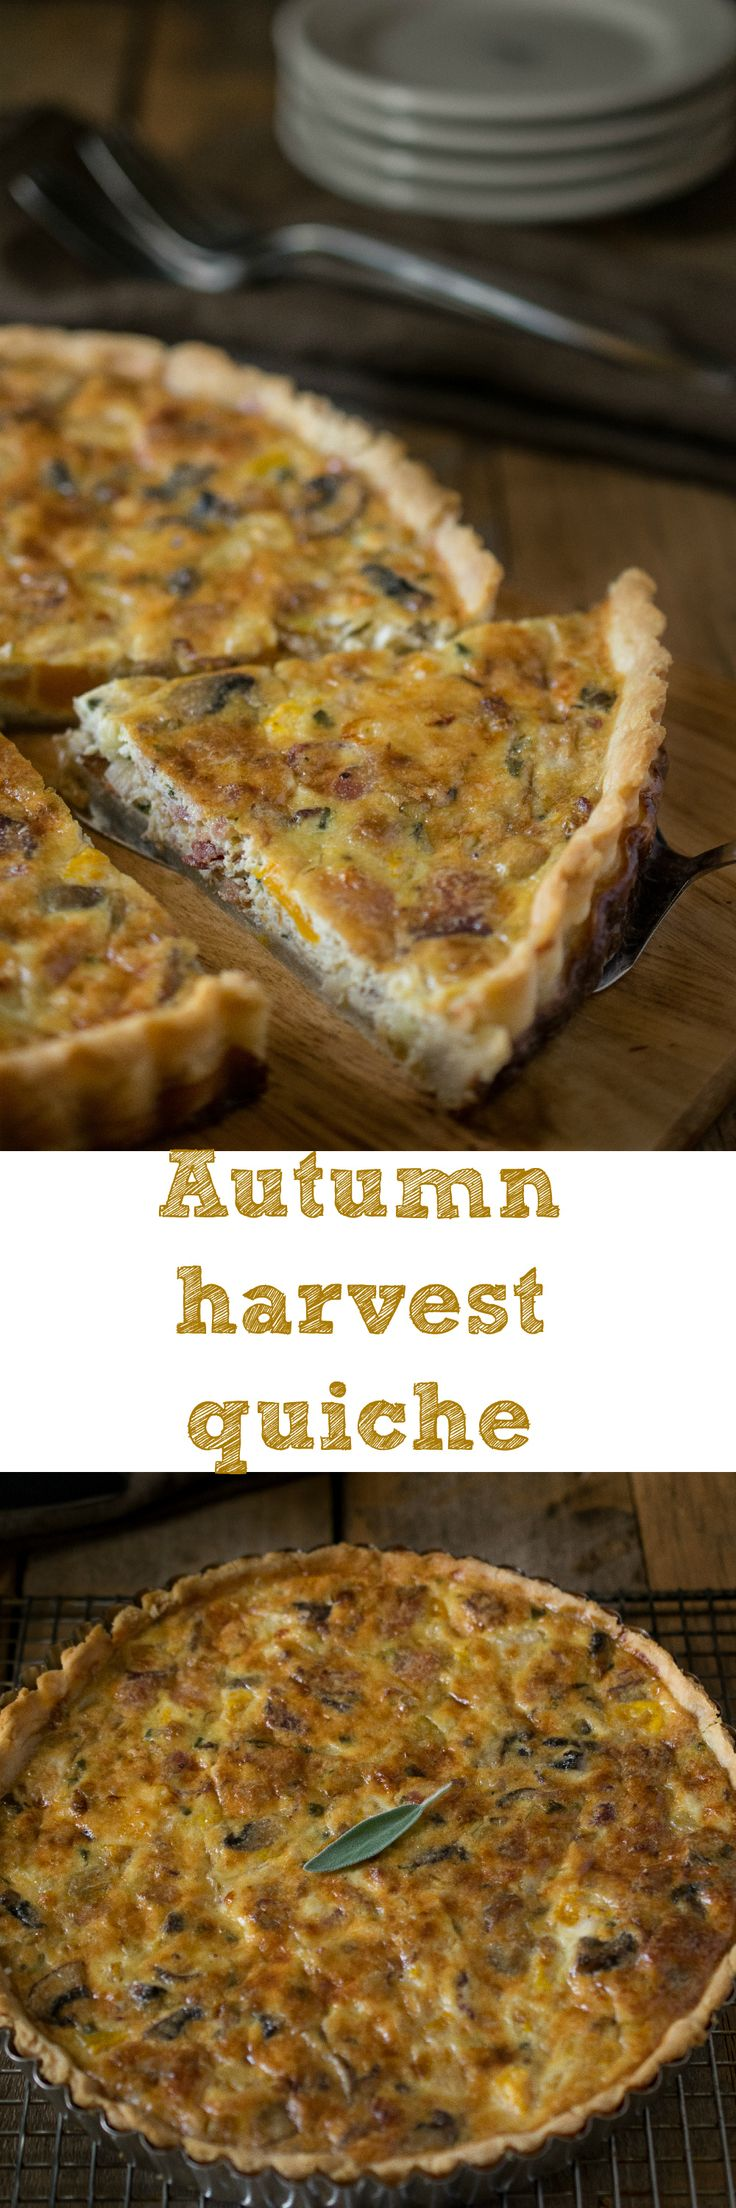 Autumn harvest quiche - Buttery, flaky crust with a mushroom, bacon, butternut squash, leek and sage filling. #autumn #vegetables #fall #quiche